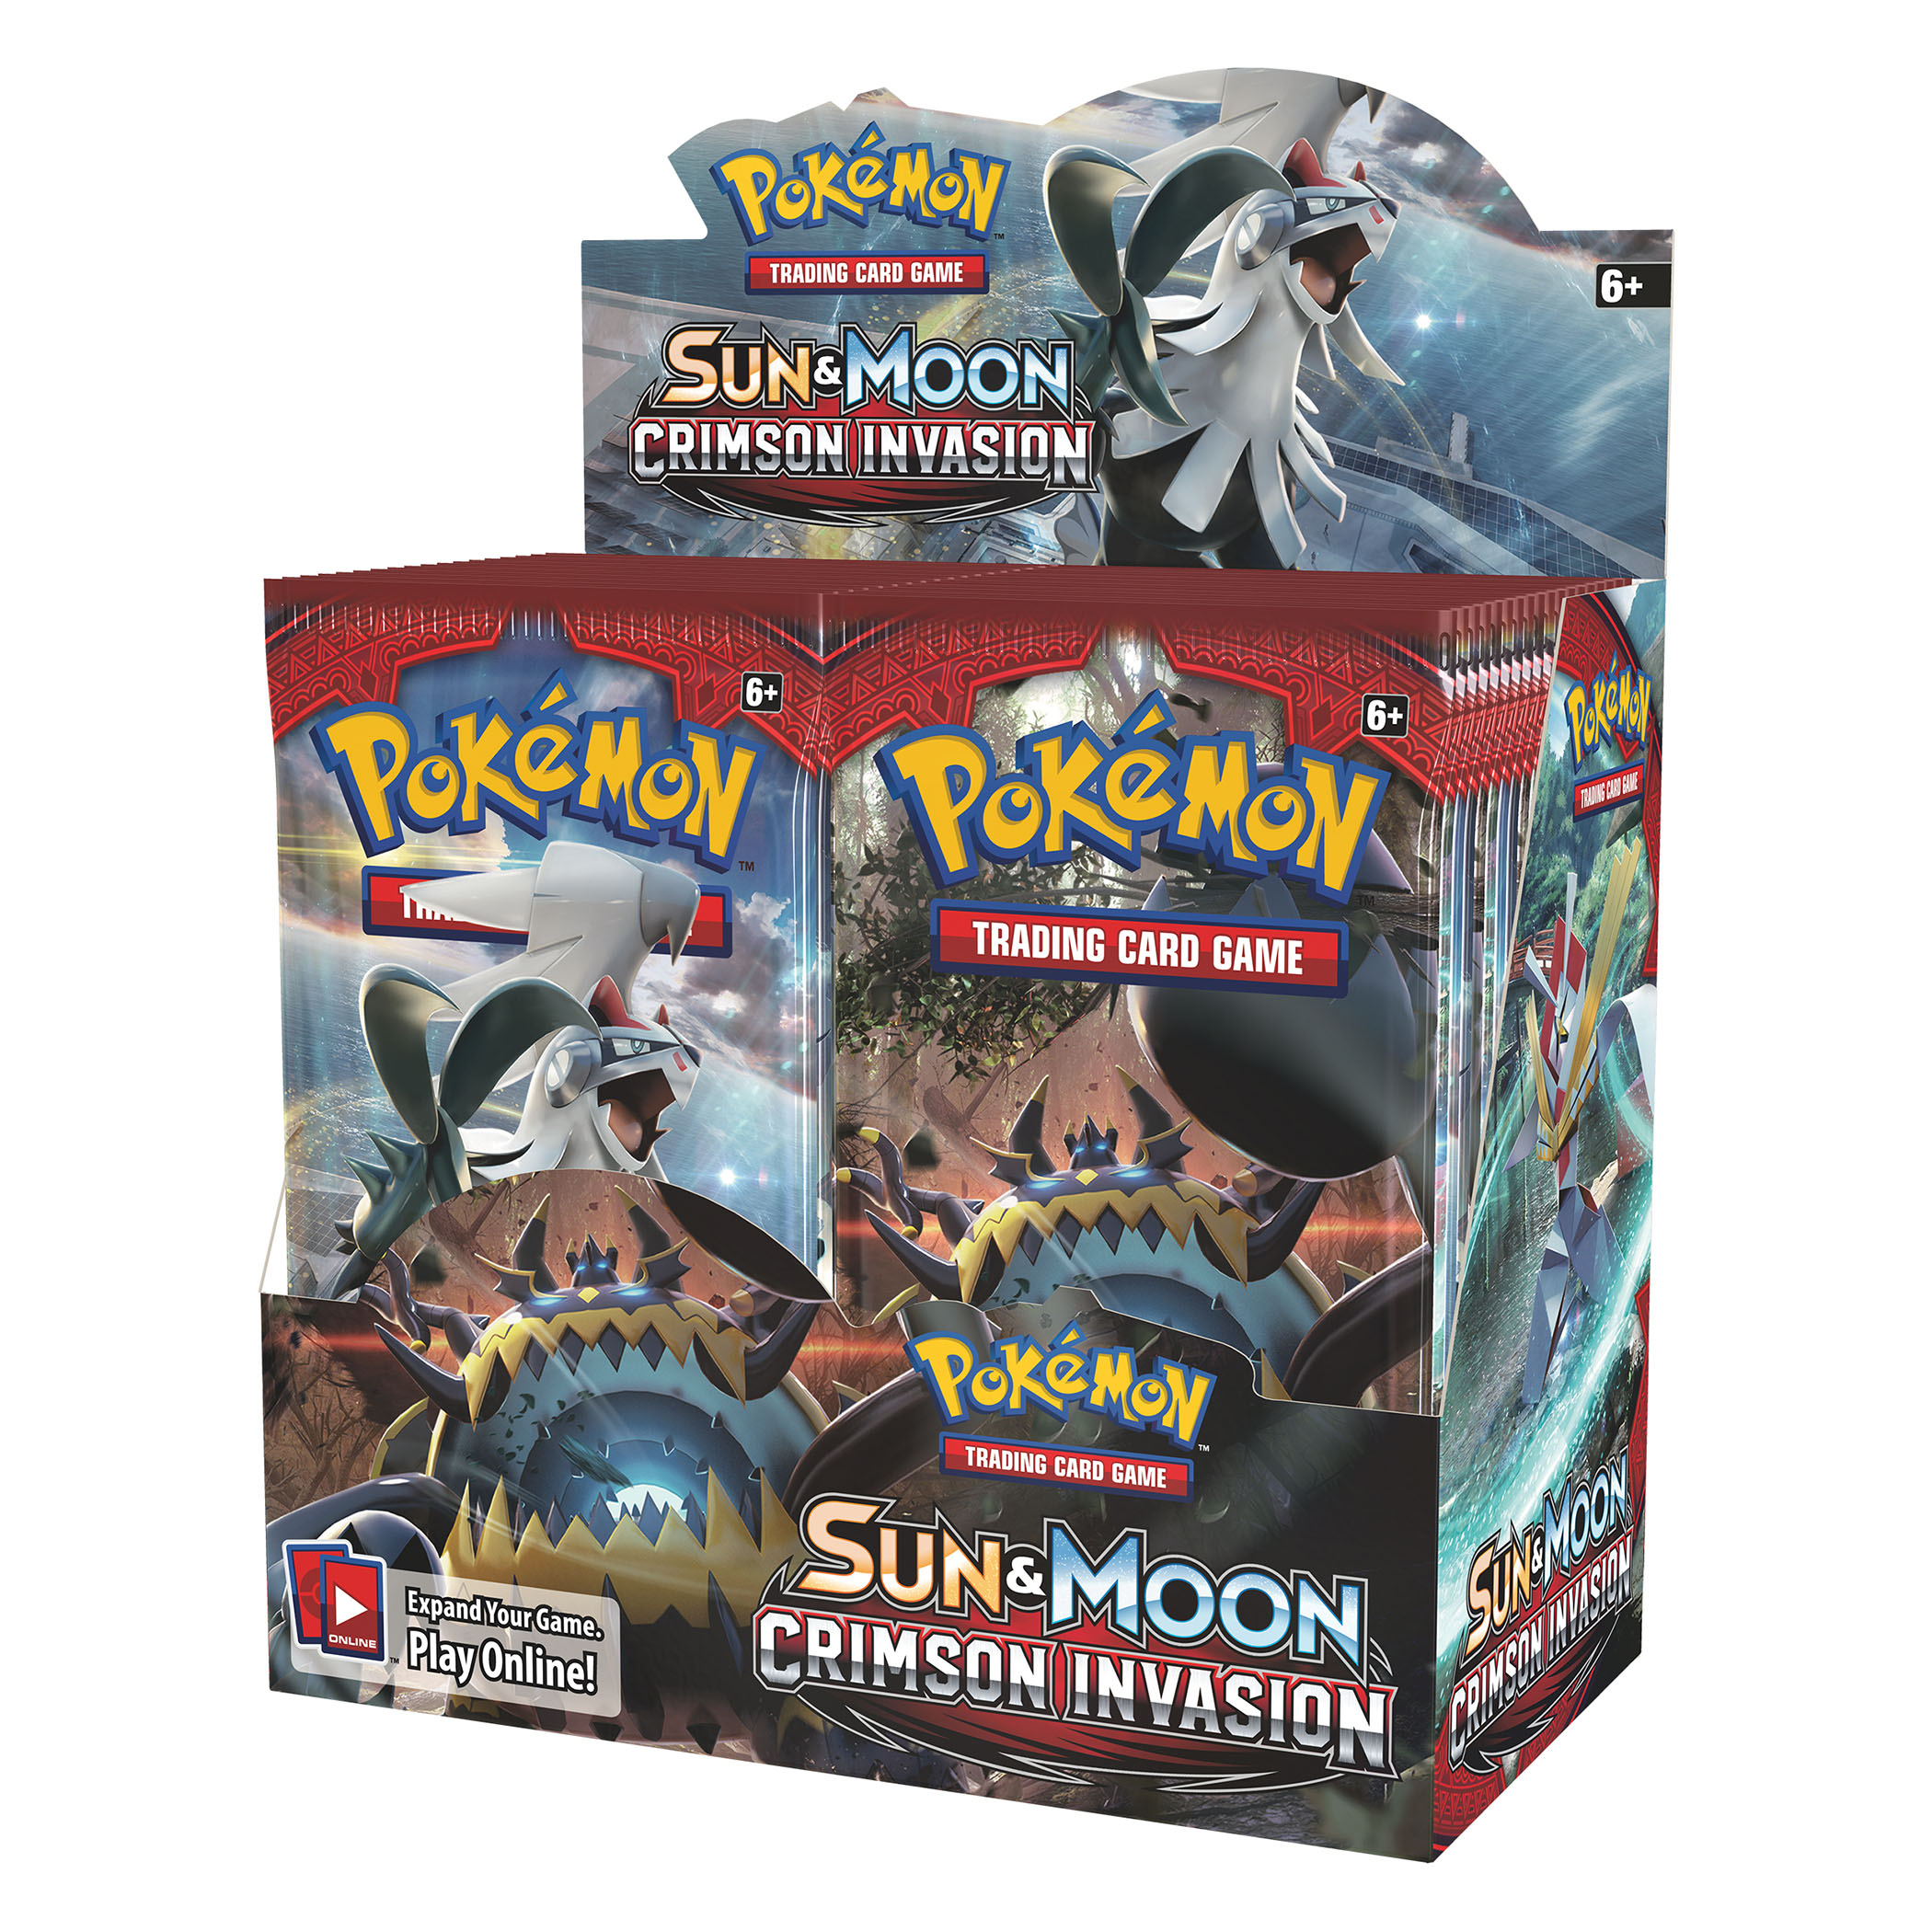 Pokemon Trading Card Game Sun and Moon Crimson Invasion Booster Box by Pokemon